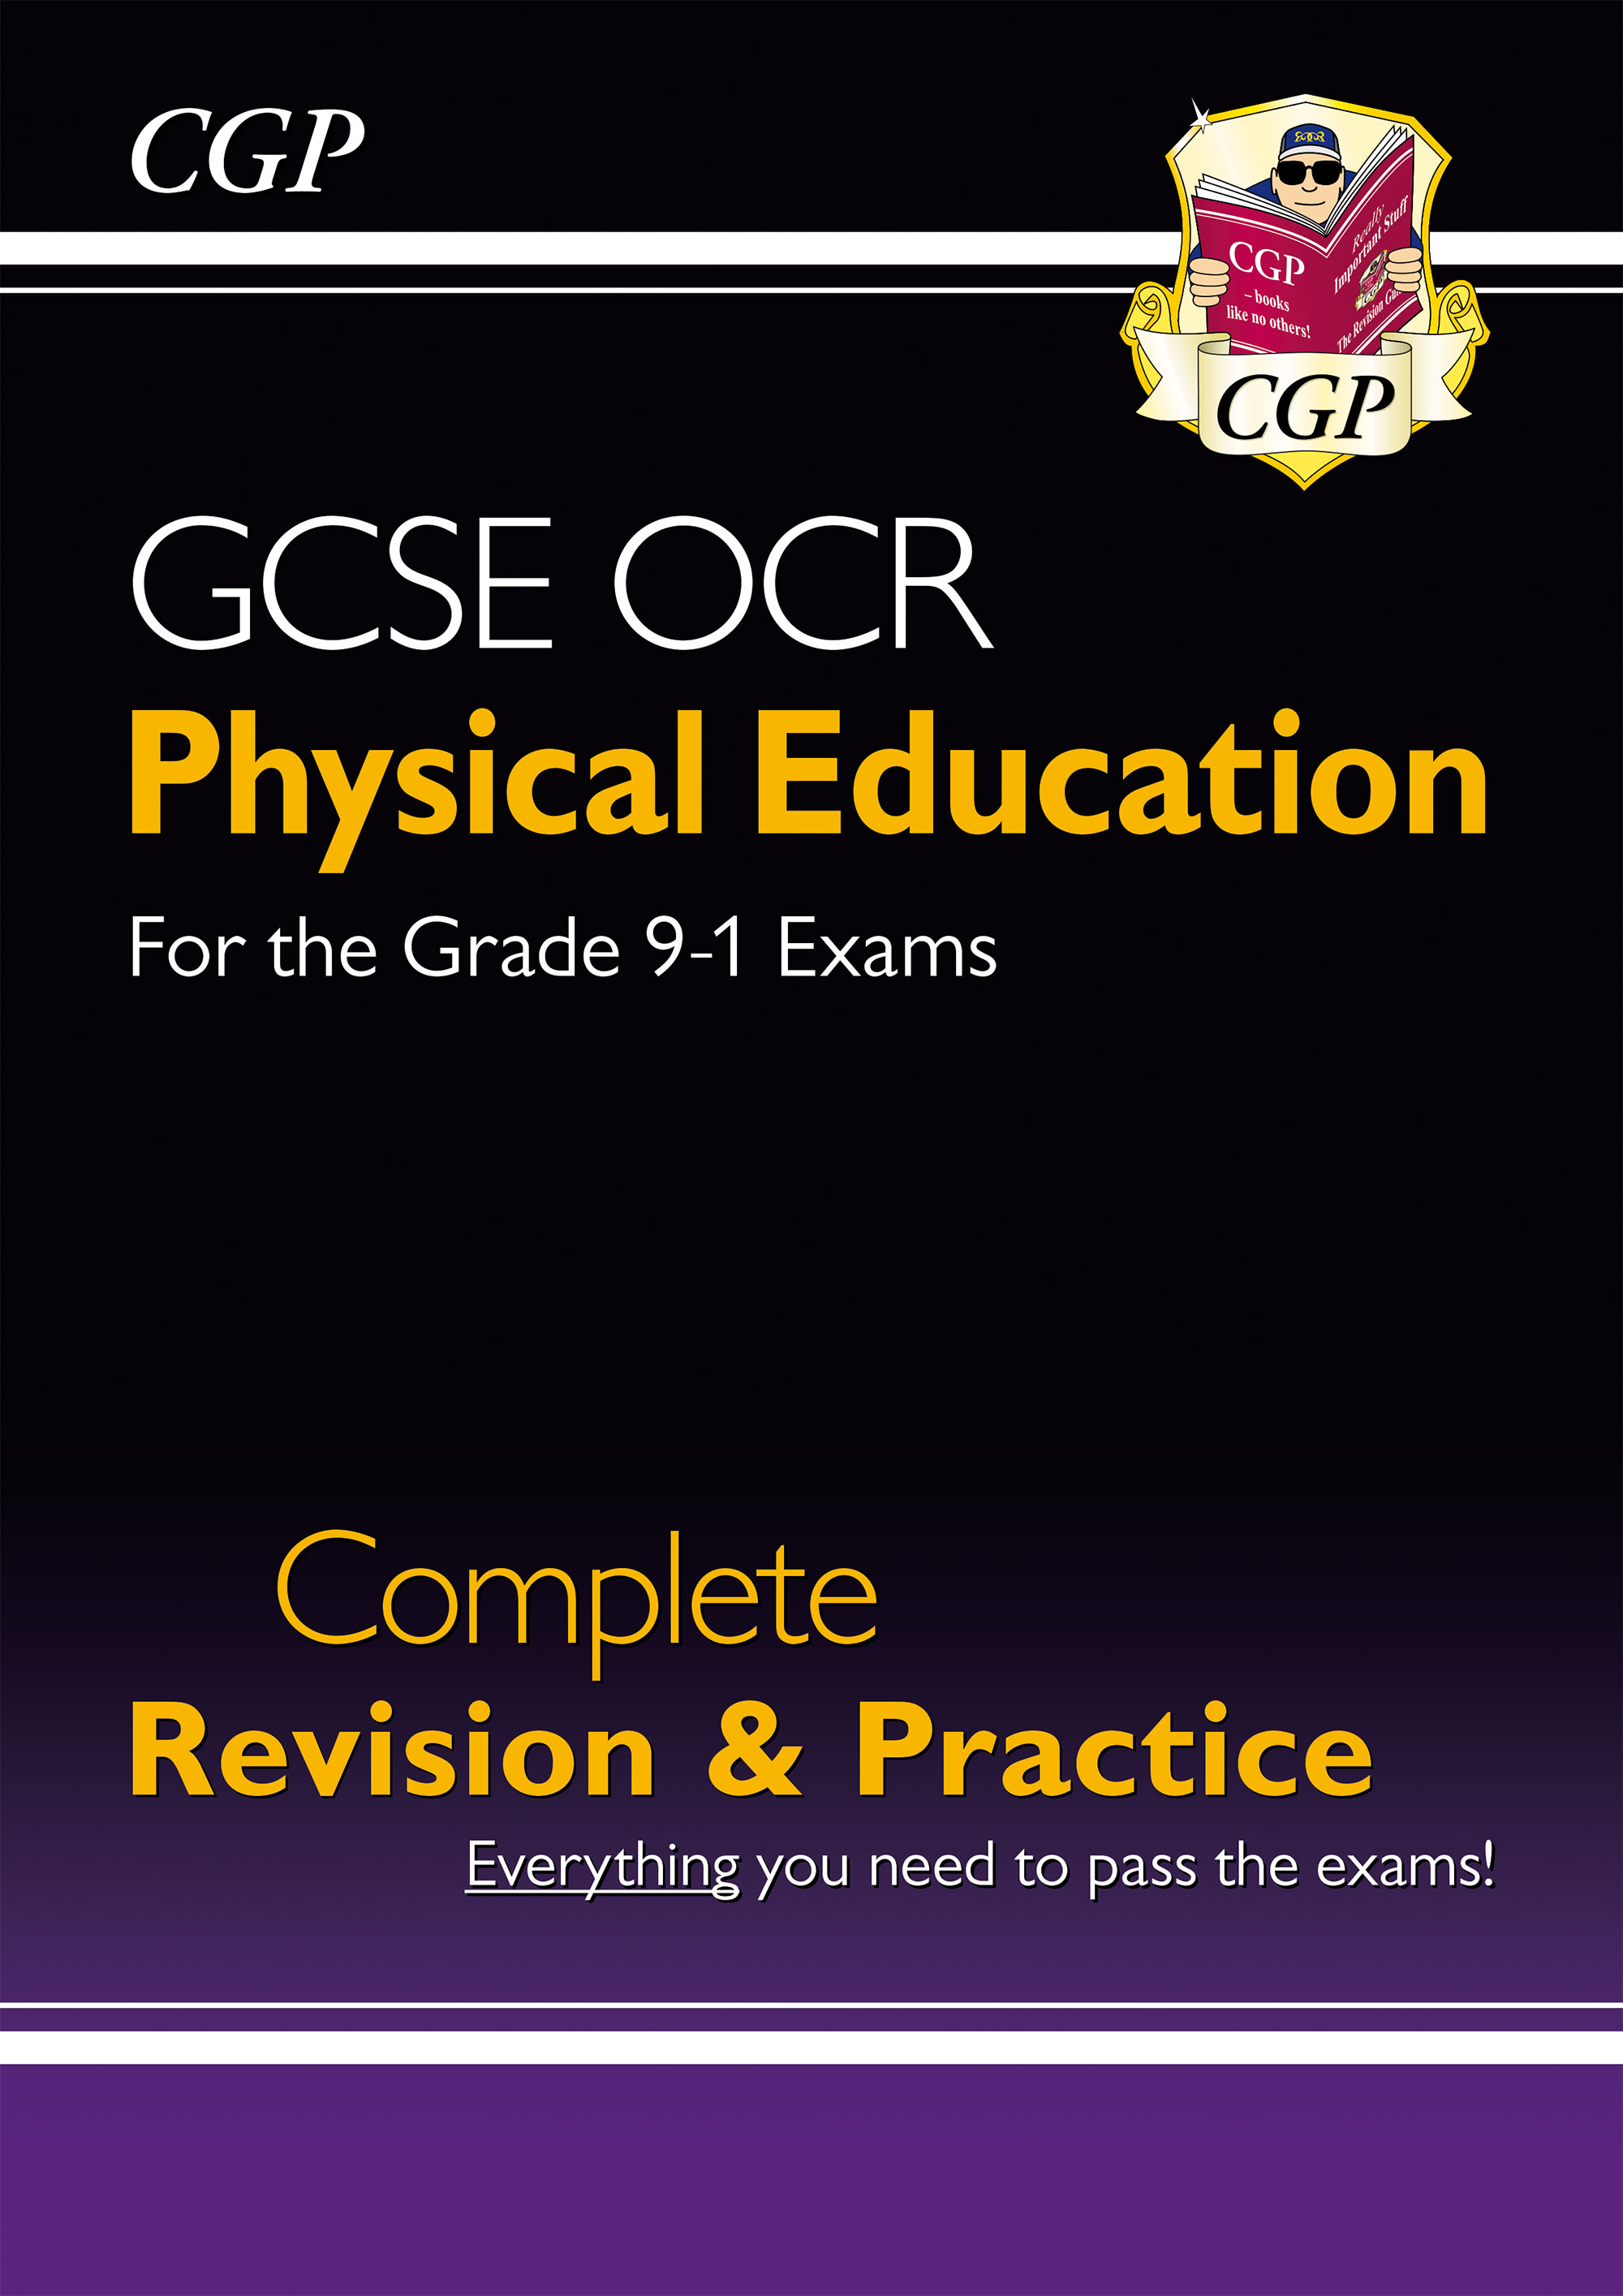 JRS41DK - New Grade 9-1 GCSE Physical Education OCR Complete Revision & Practice